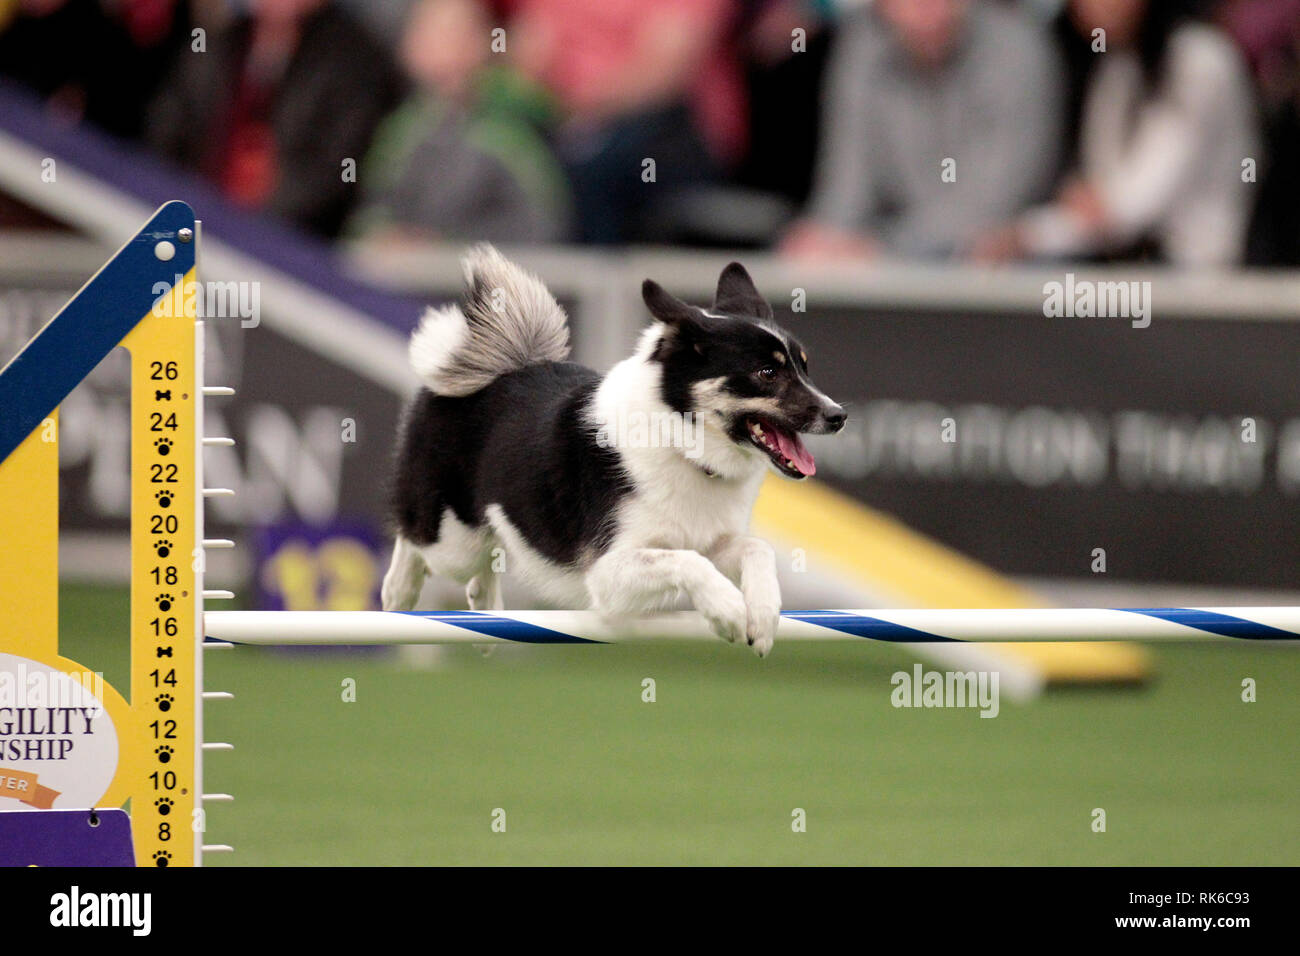 New York, USA. 09th Feb, 2019. Westminster Dog Show - Loa, an Icelandic Sheepdog, competing in the preliminaries of the Westminster Kennel Club's Master's Agility Championship. Credit: Adam Stoltman/Alamy Live News Stock Photo